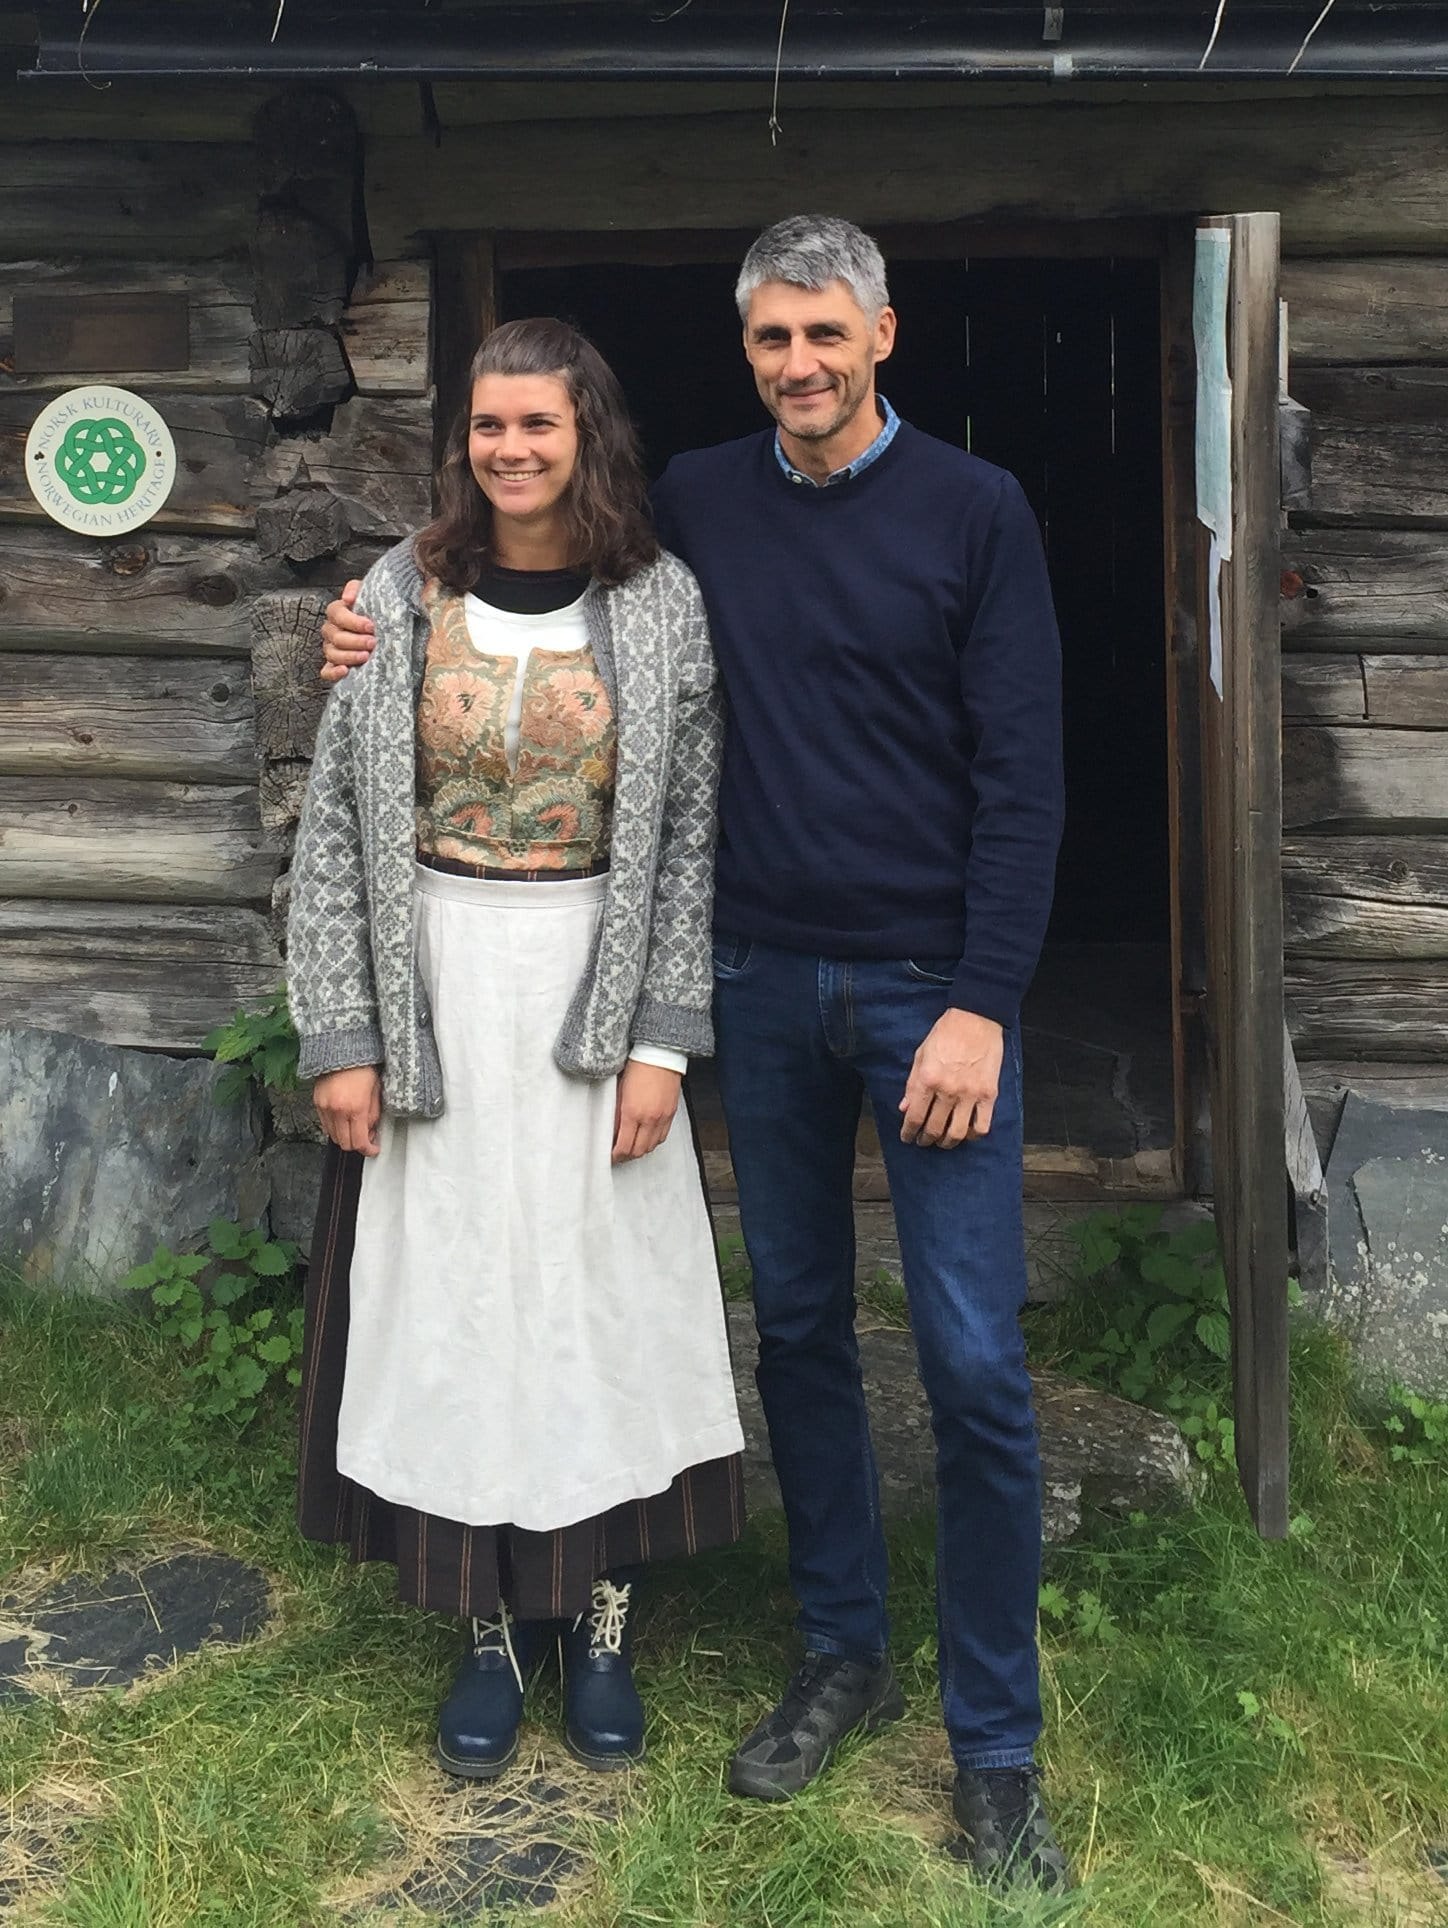 Owner of the farm, Per Oluf Solbraa, and his daughter, Anne Solbraa